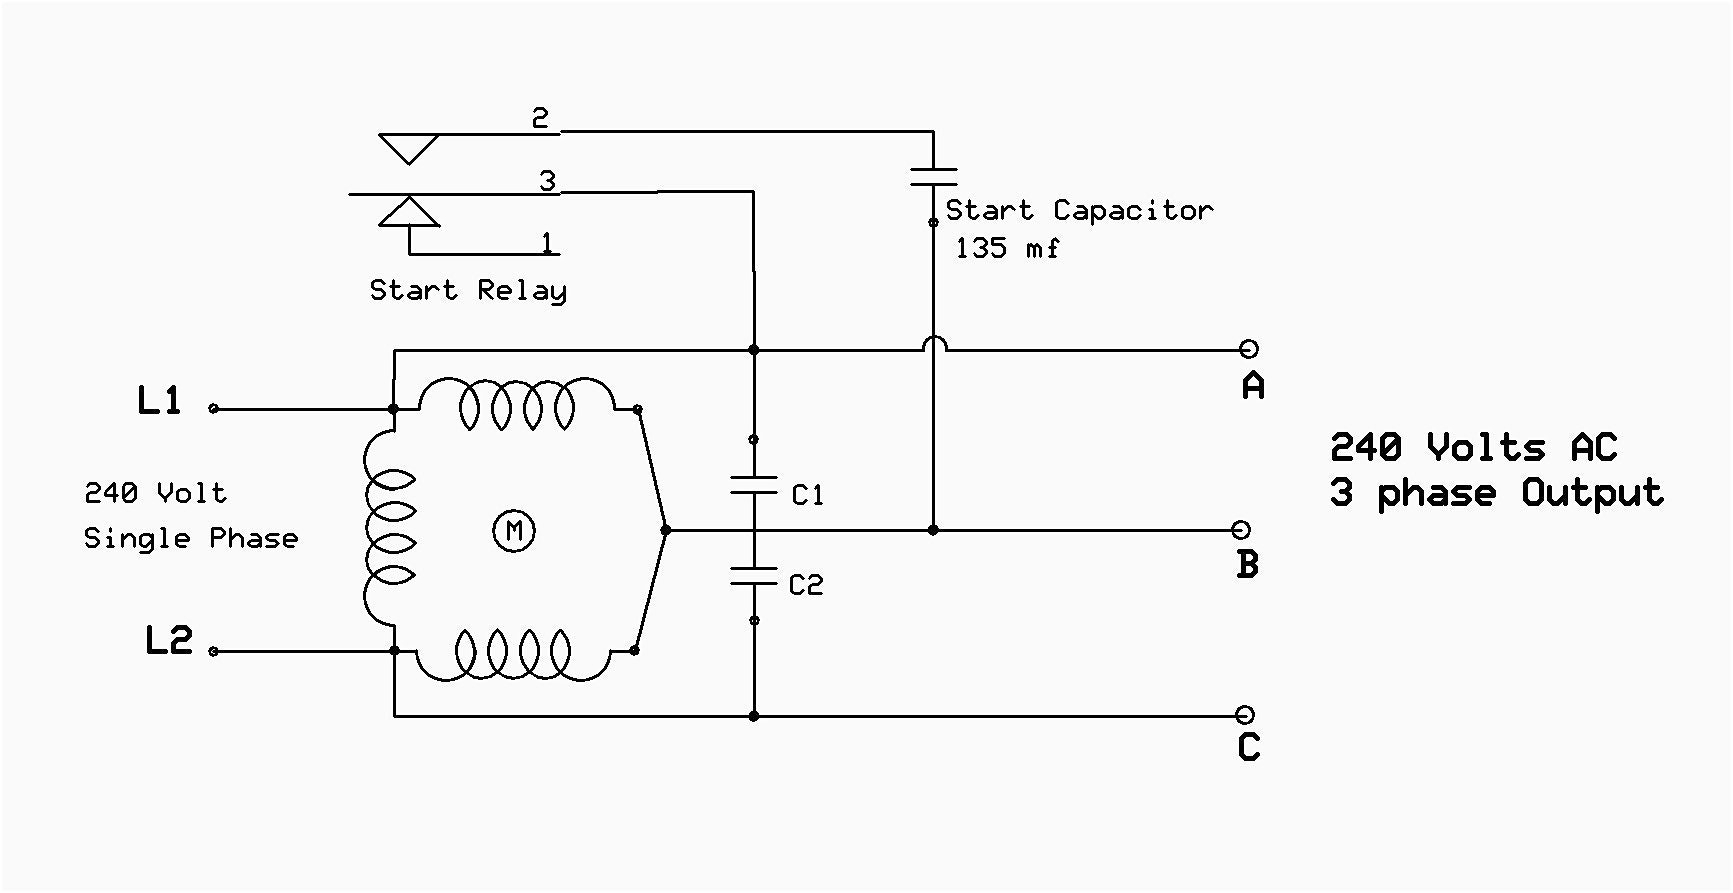 Wiring Diagram Single Phase Motor 6 Lead | Wiring Library - 6 Lead Single Phase Motor Wiring Diagram